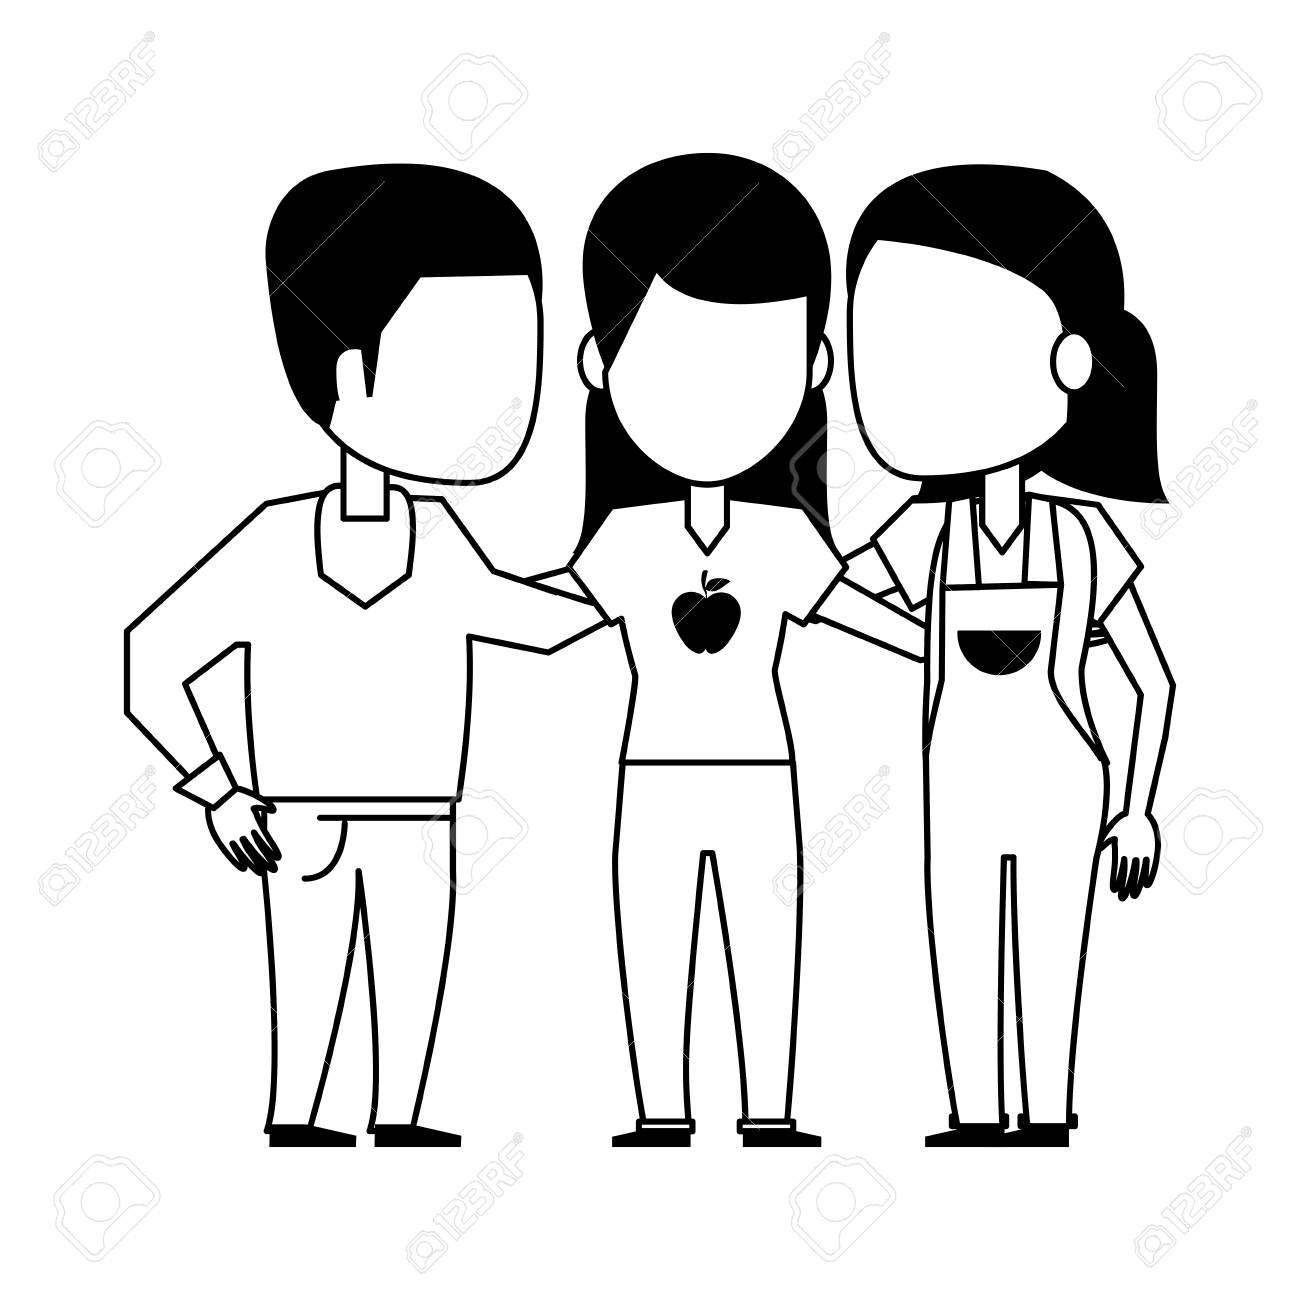 Friends Embraced Group Of People Cartoon Vector Illustration